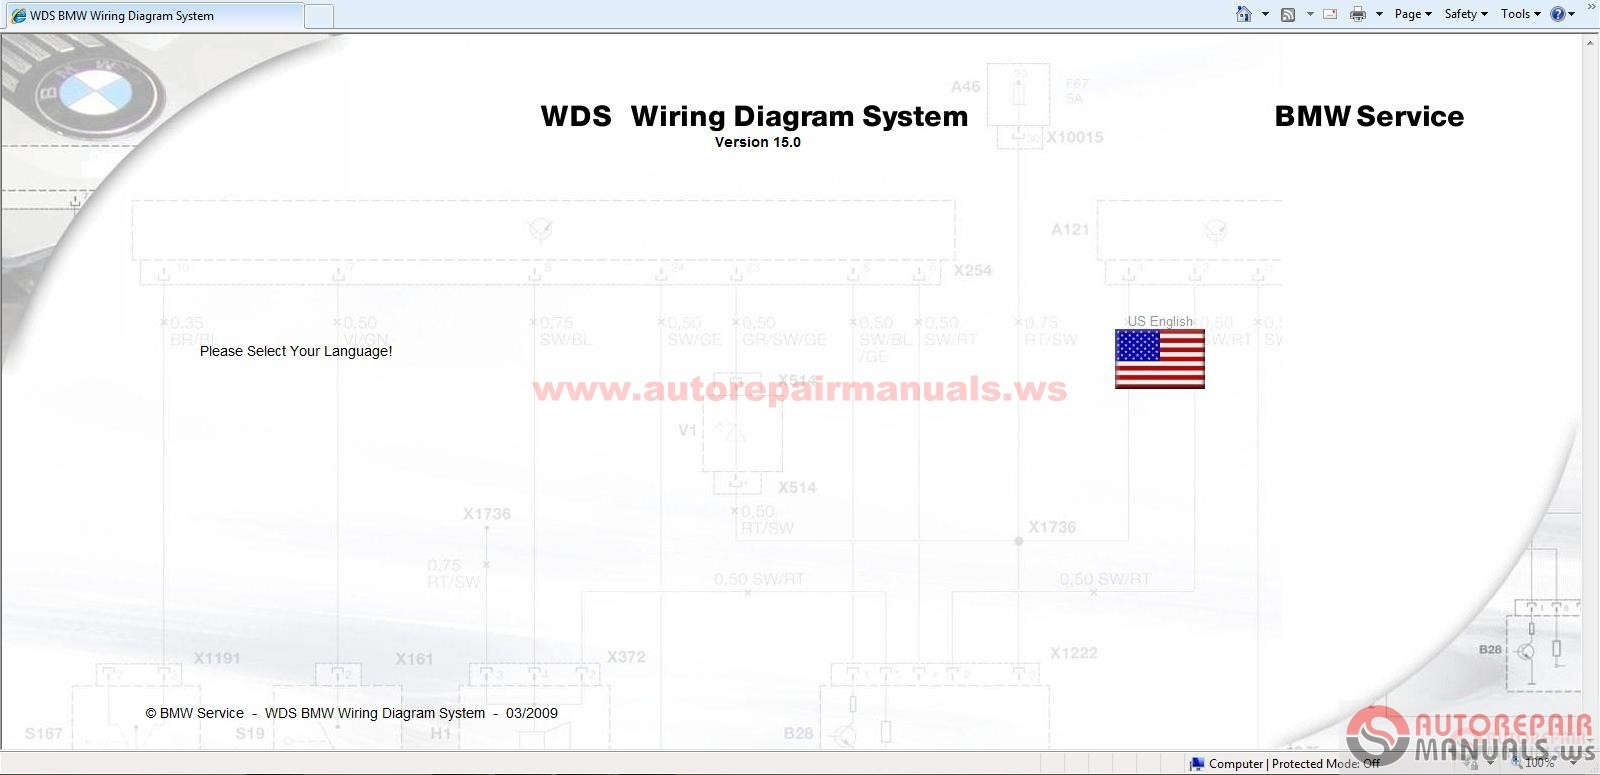 hight resolution of bmw wds v15 and mini wds v7 wiring diagram system auto repair bmw wds v15 wiring diagram